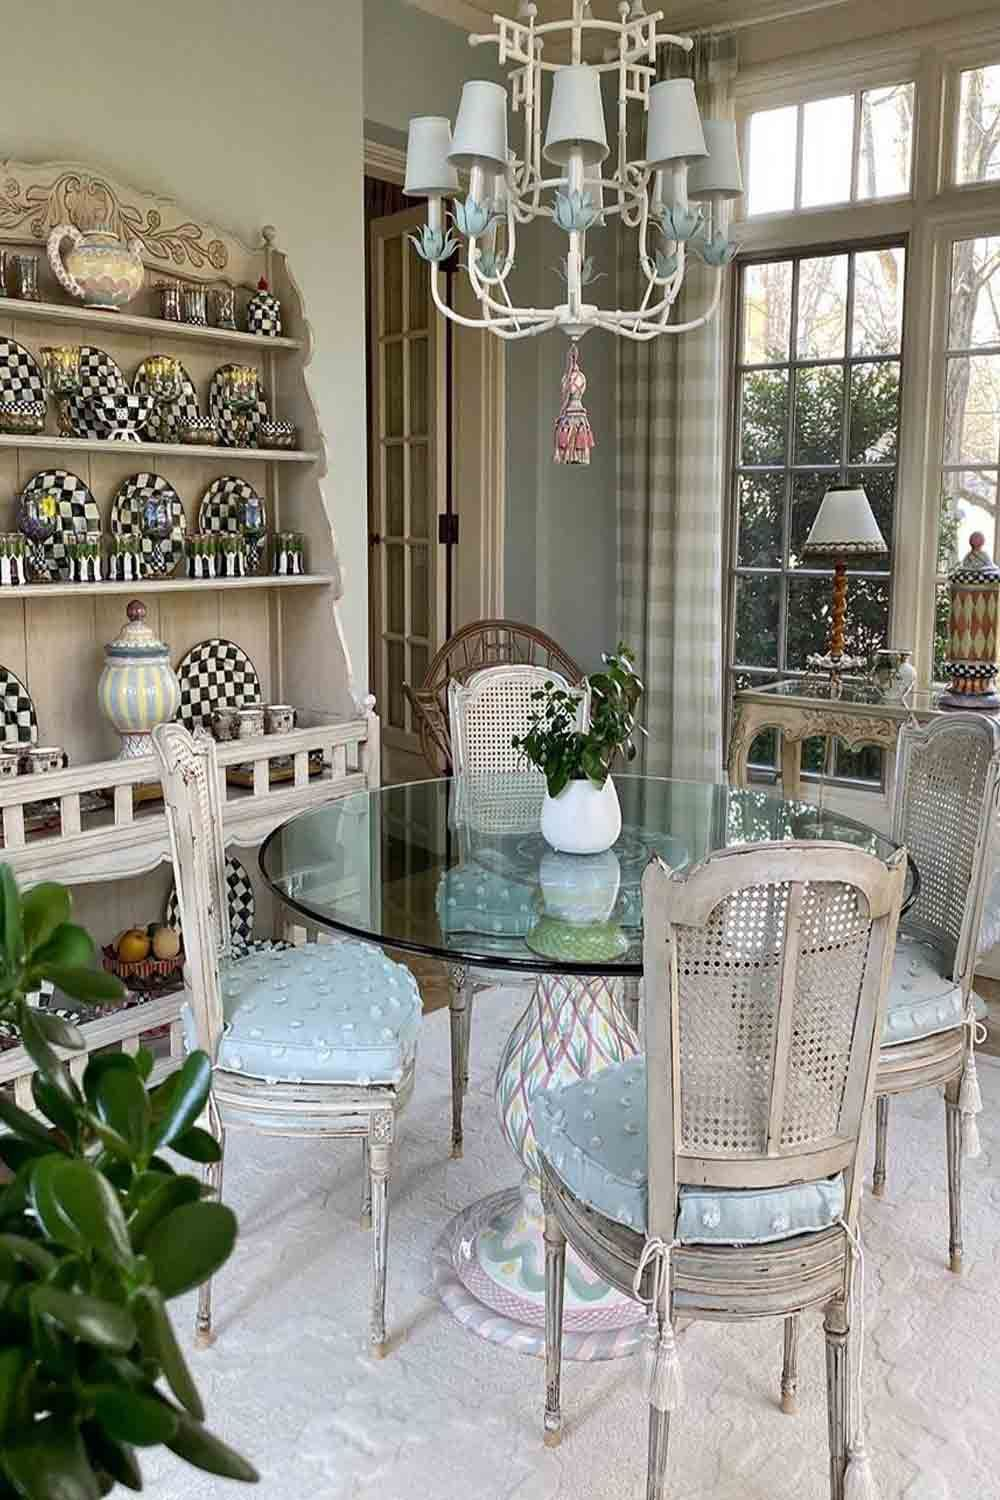 28 Sunroom Ideas: The Best Combo Of Indoor And Outdoor In ... on Outdoor Living Shops Near Me id=98621